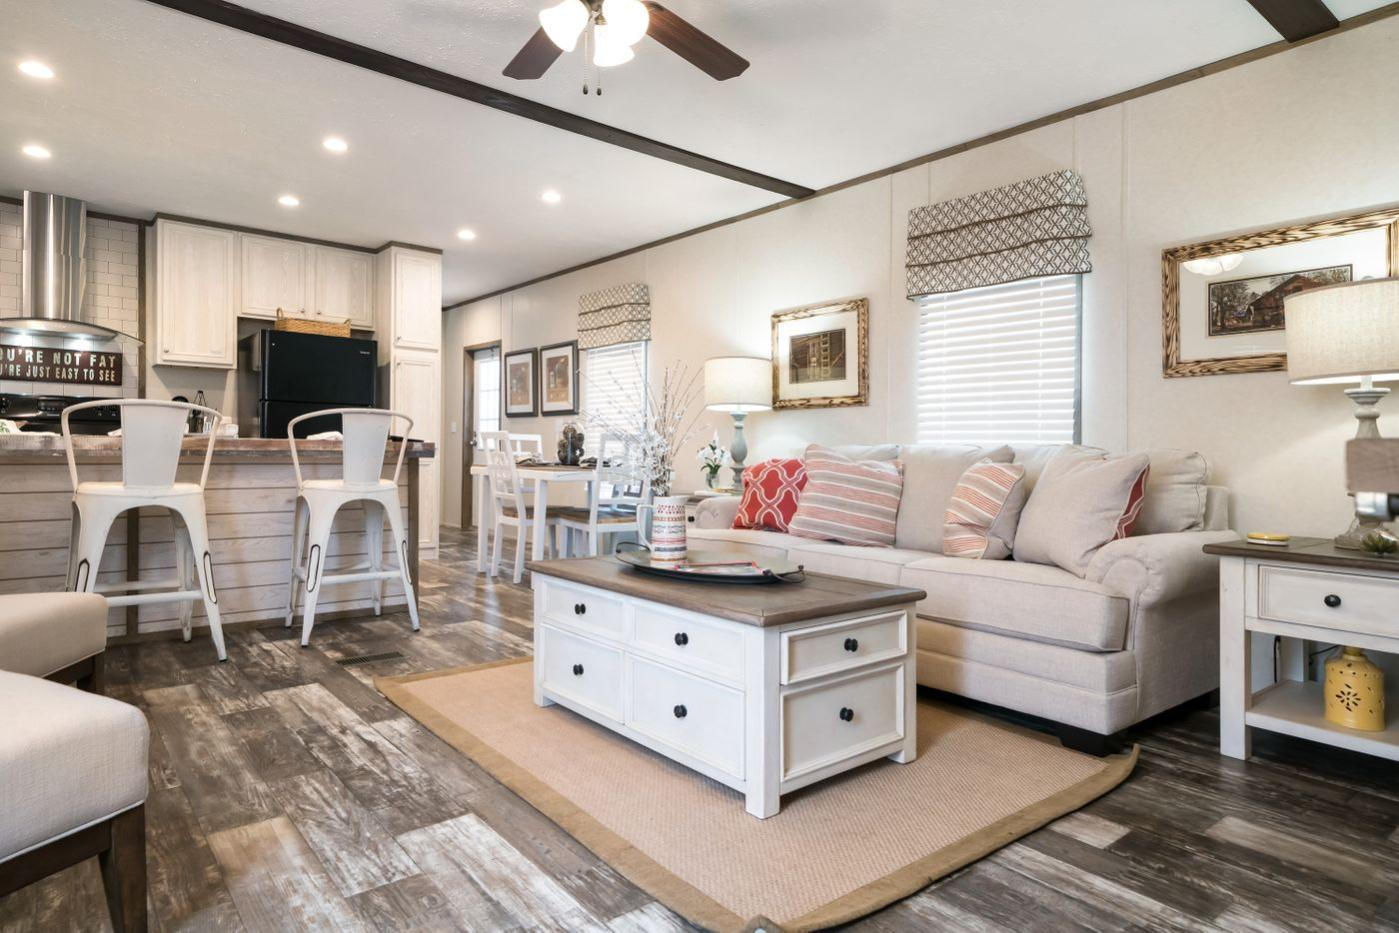 Living Room in the Edge Manufactured Home from Worldwide Mobile Homes in Lumberton, Texas